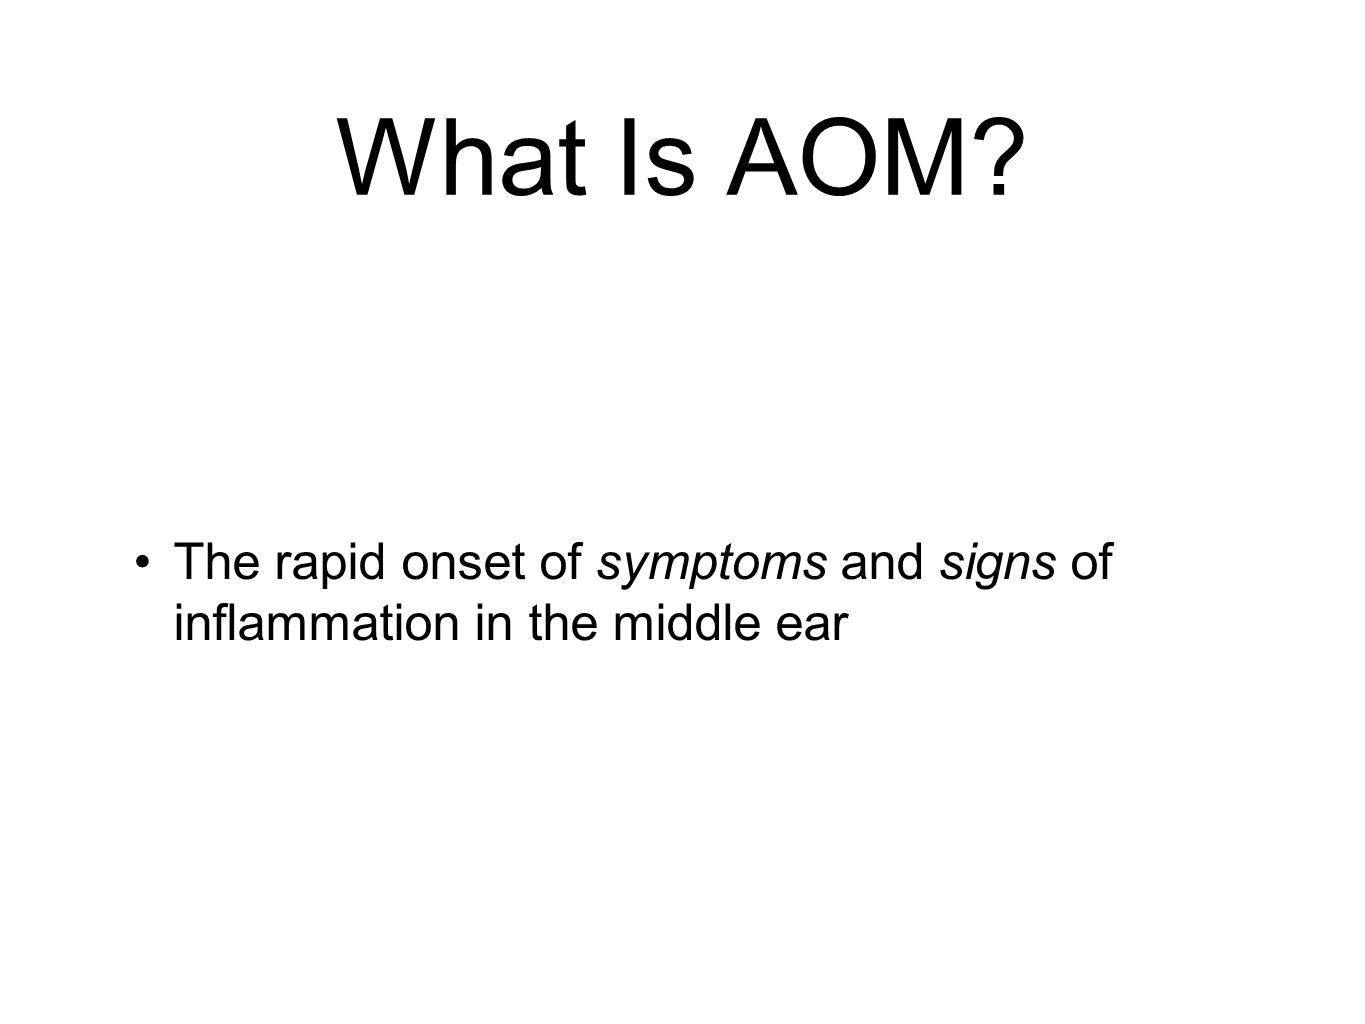 What Is AOM The rapid onset of symptoms and signs of inflammation in the middle ear